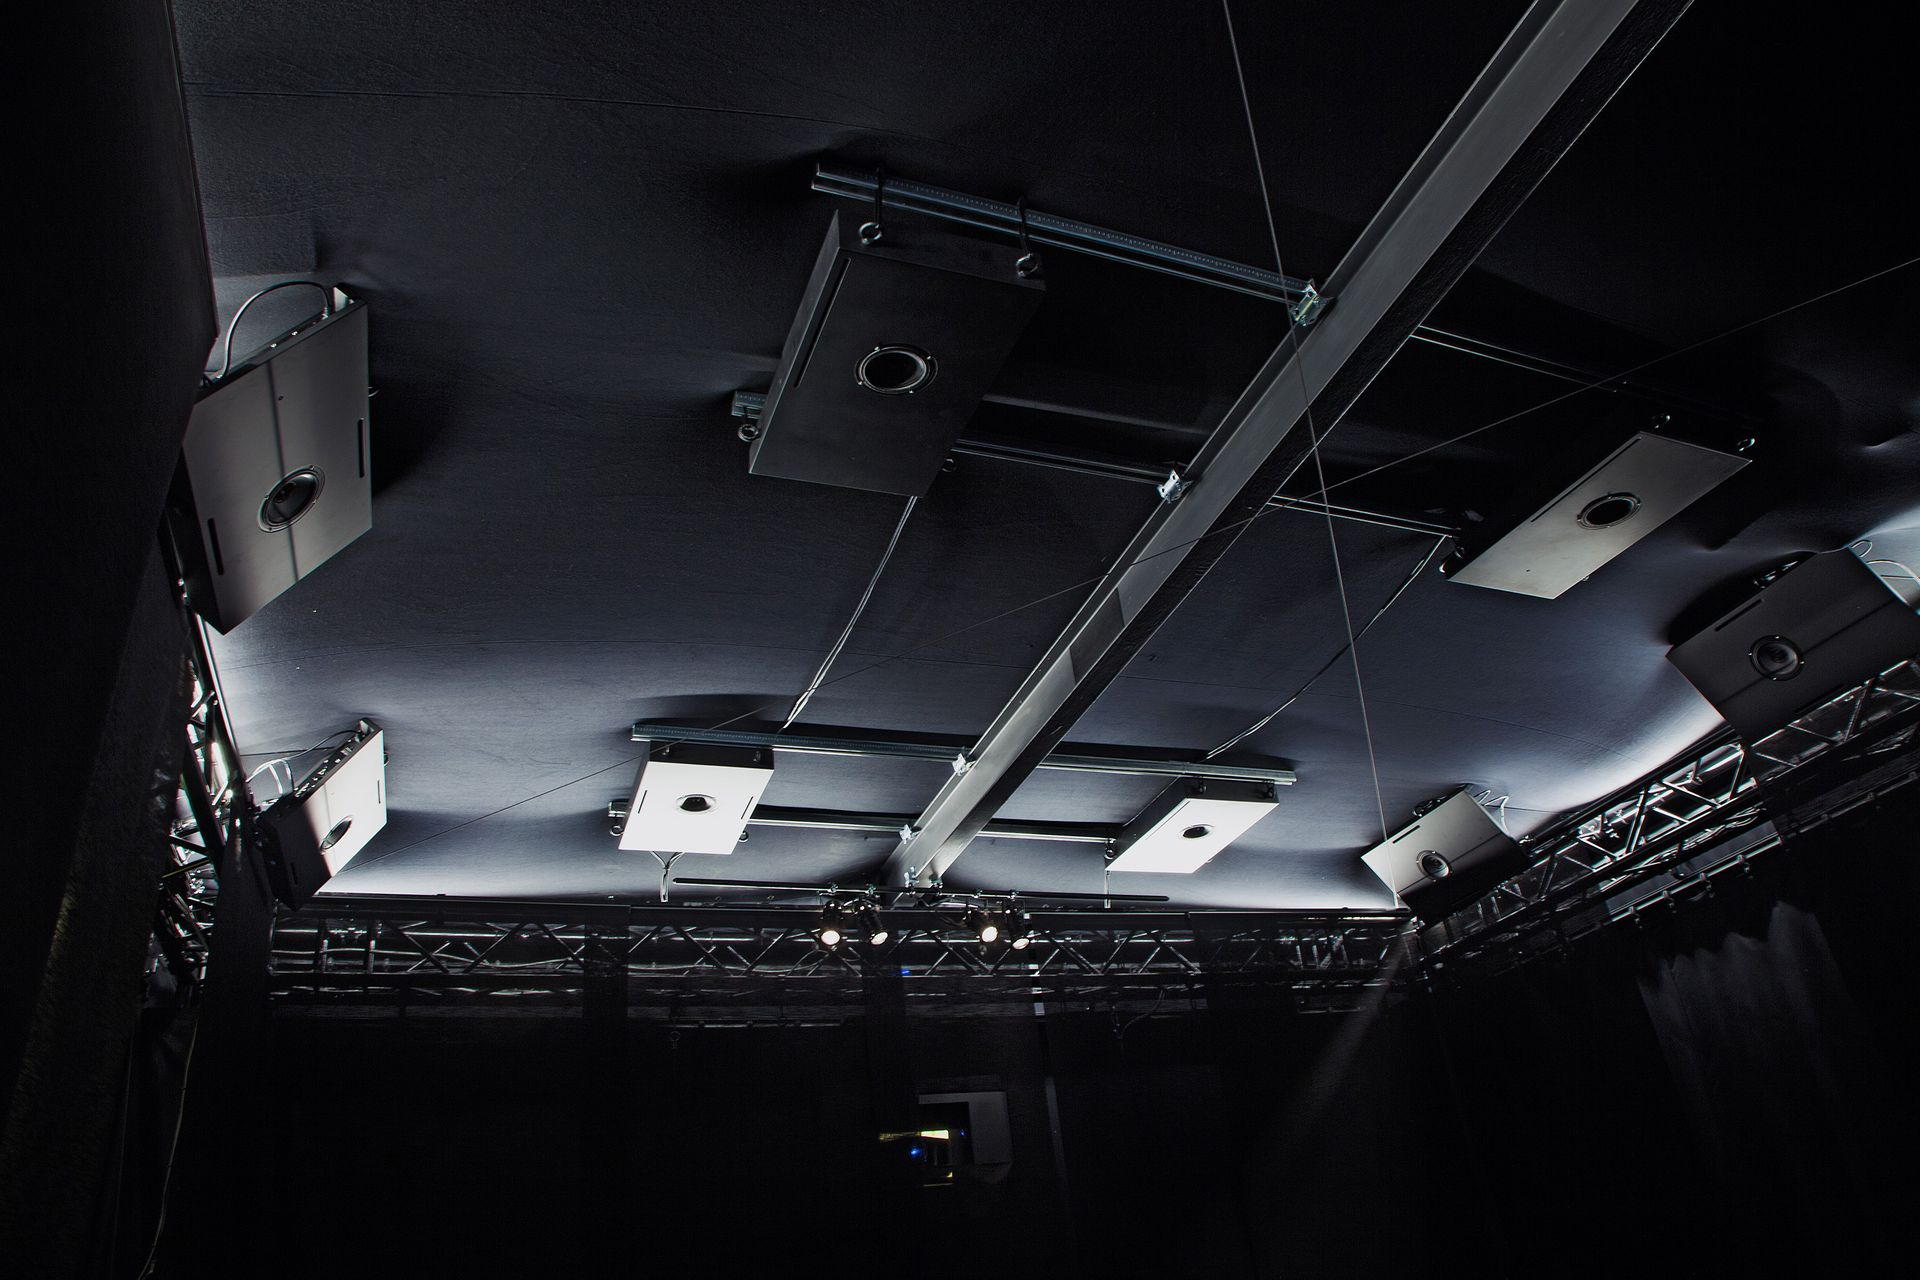 AIA_Reference_cinema_ceiling